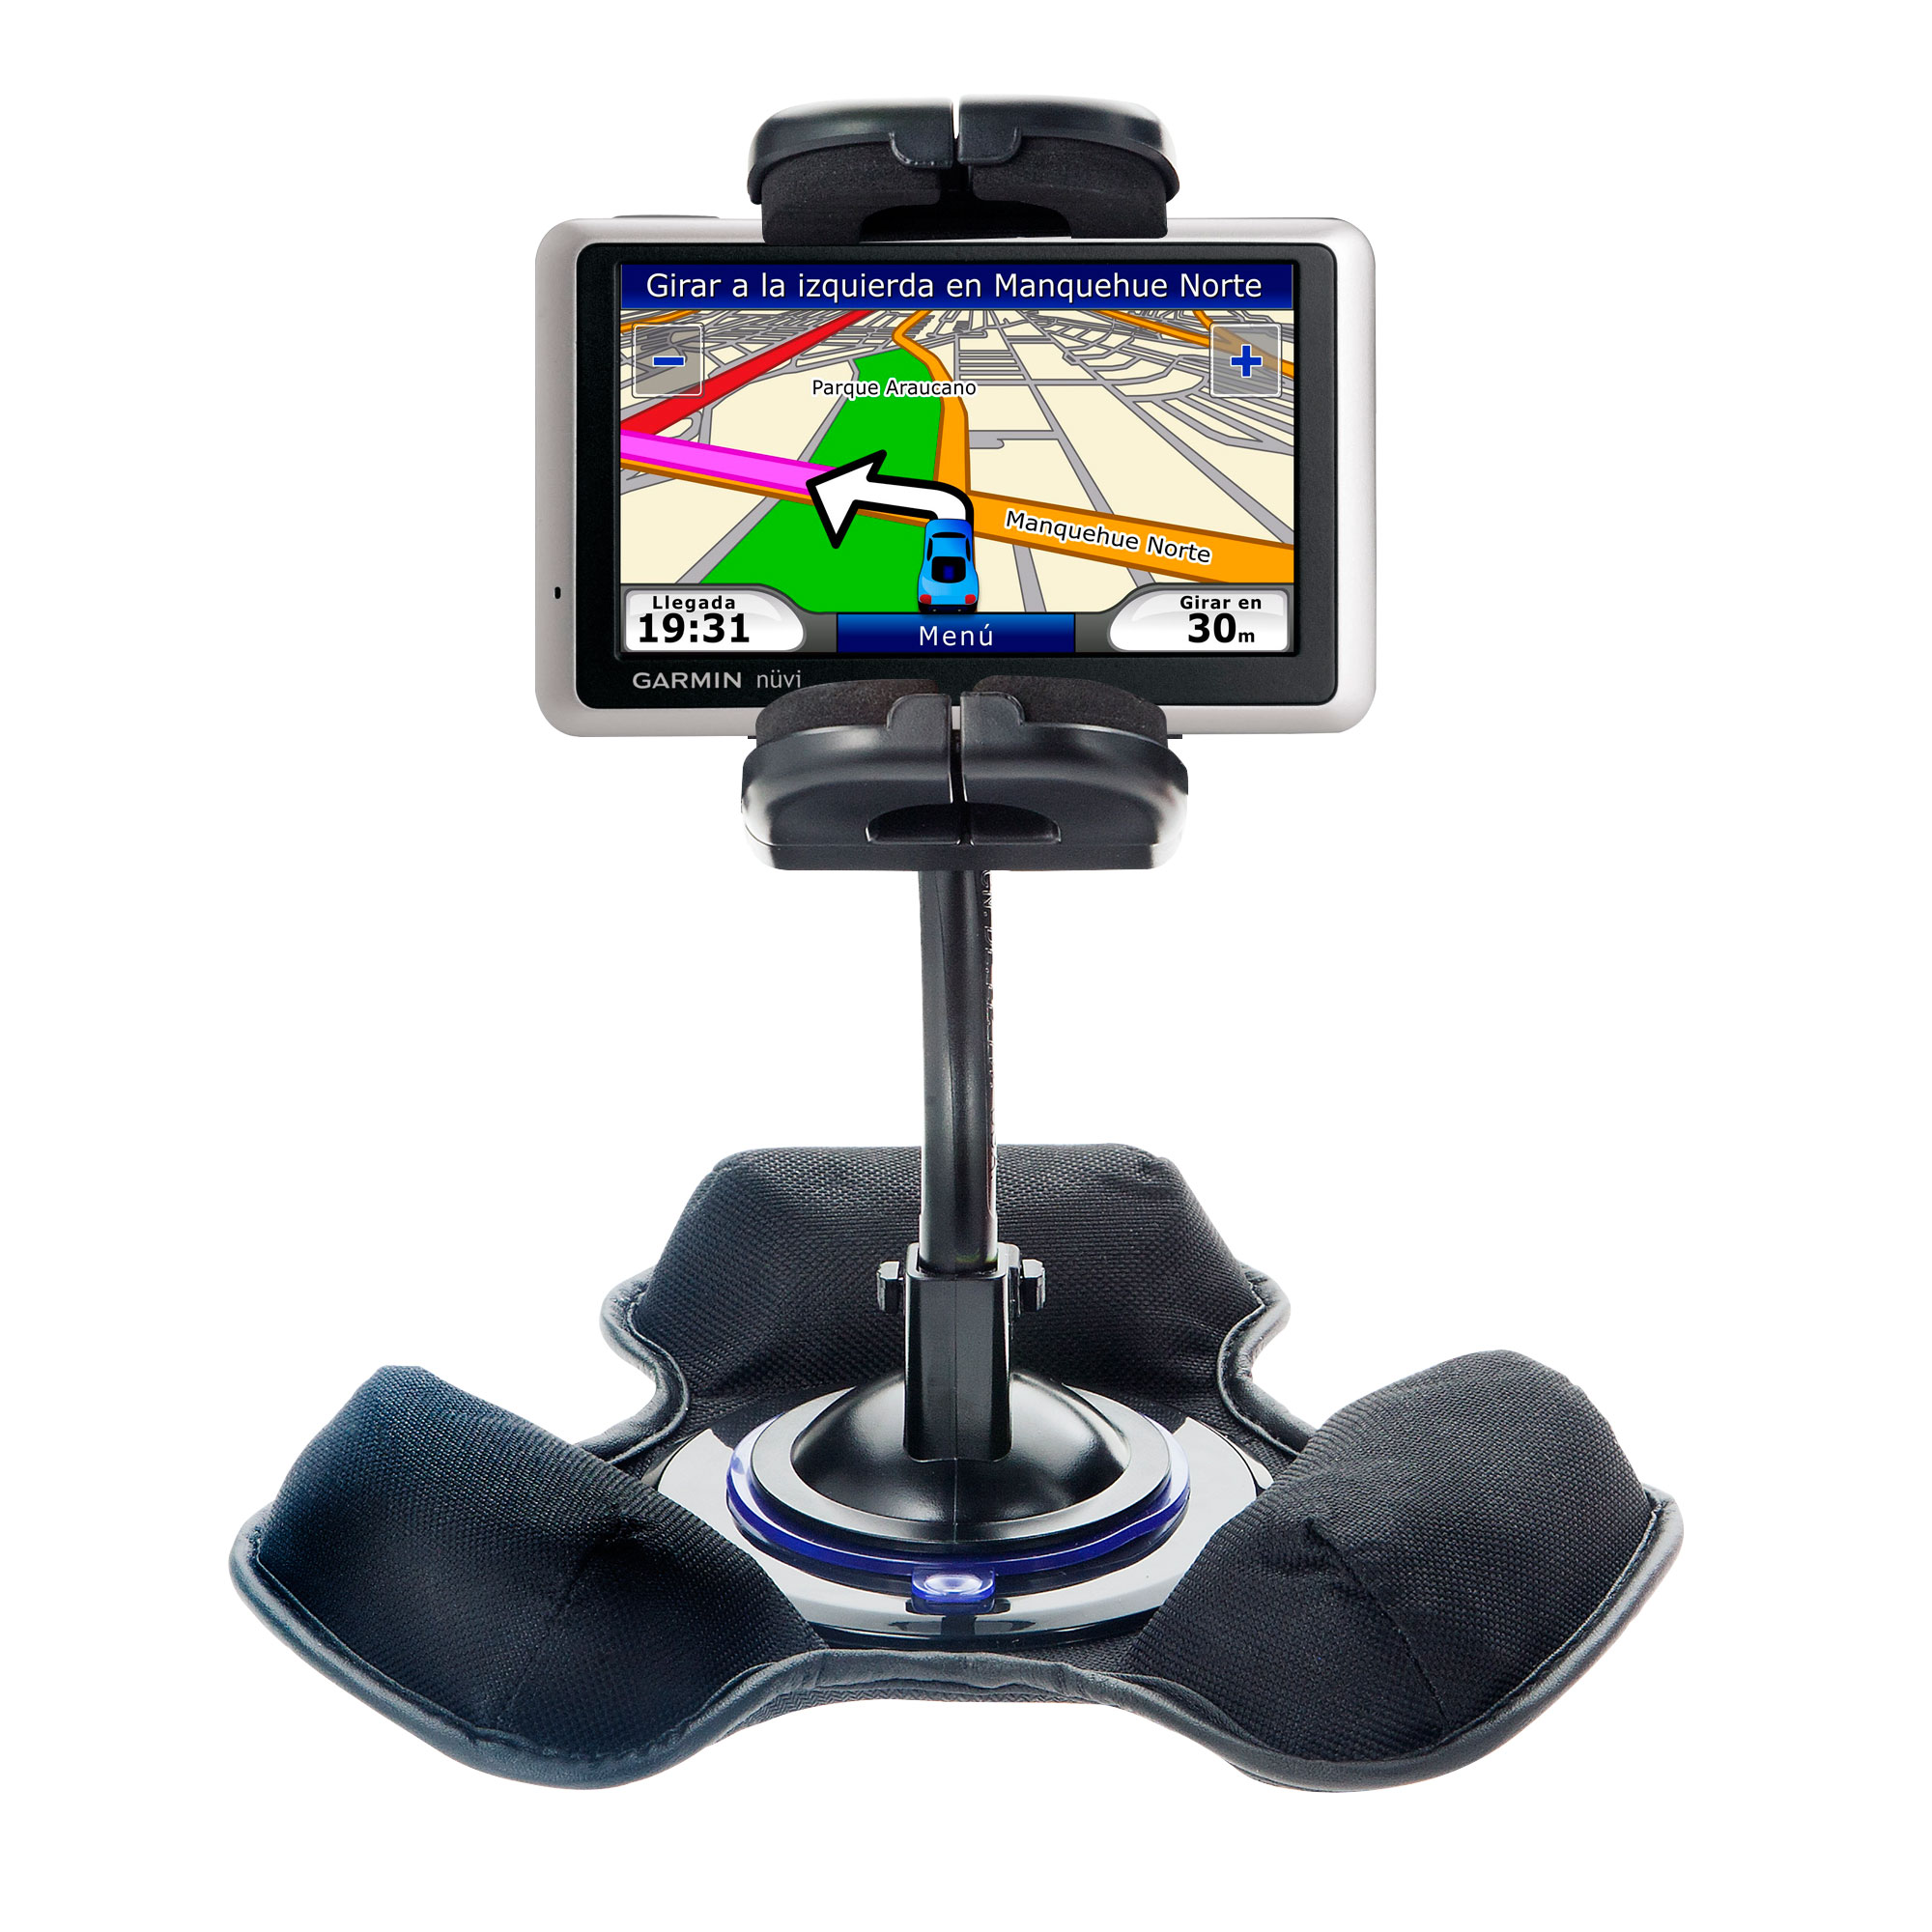 Dash and Windshield Holder compatible with the Garmin Nuvi 1390T